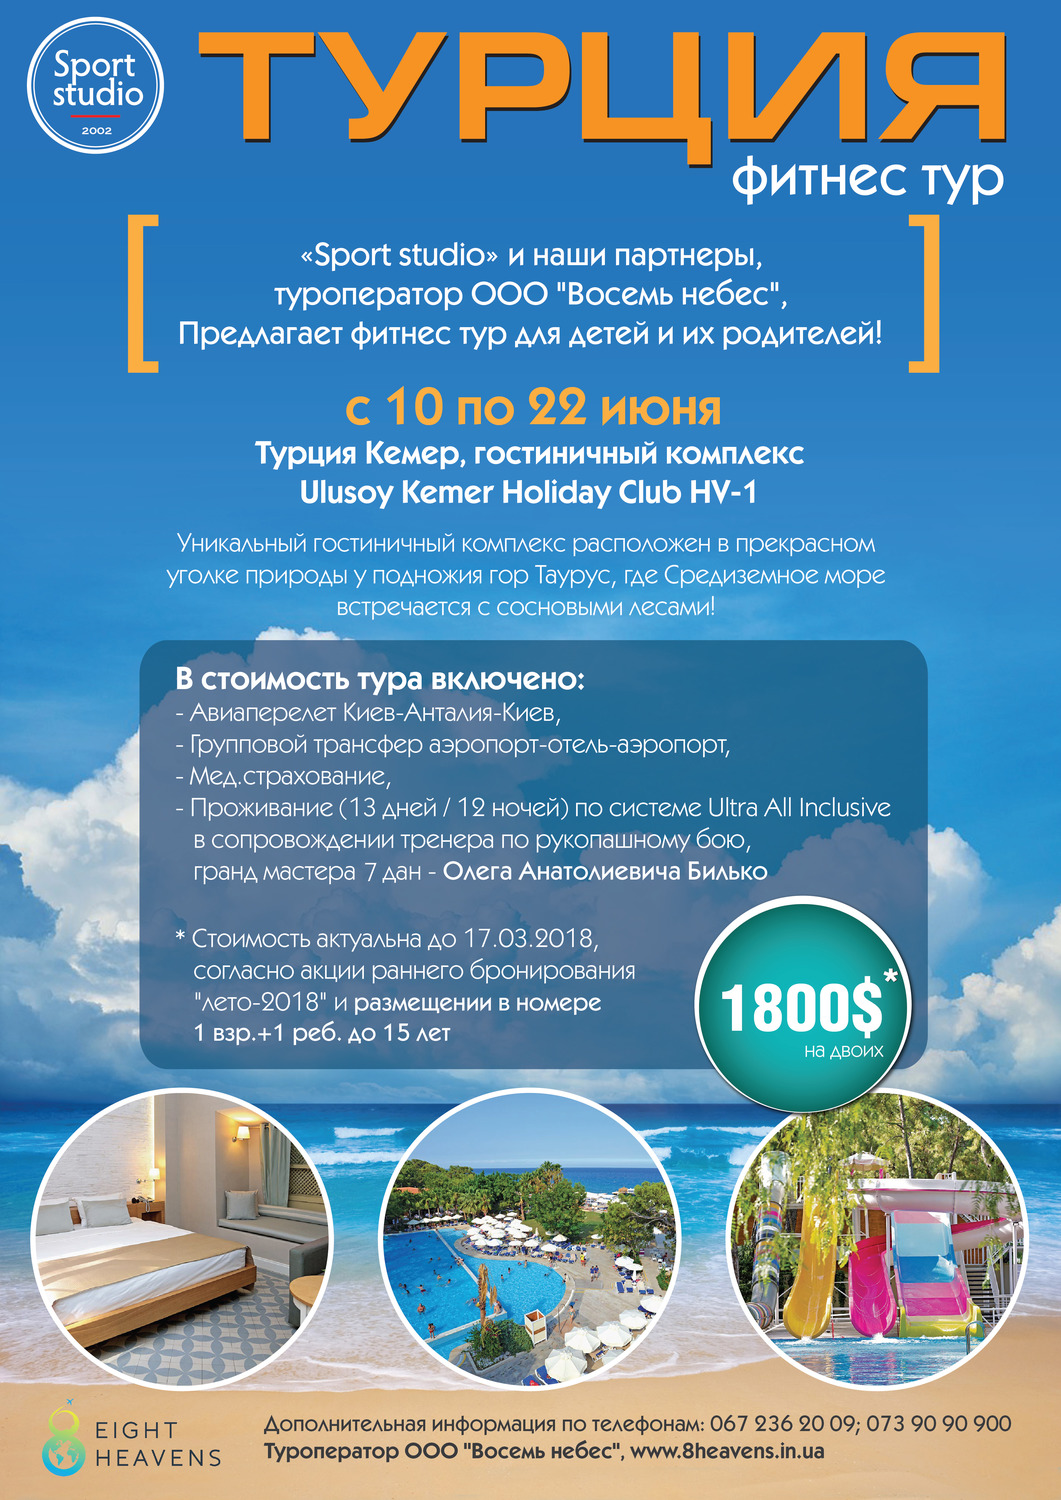 Fitness tour to Kemer with Sport Studio